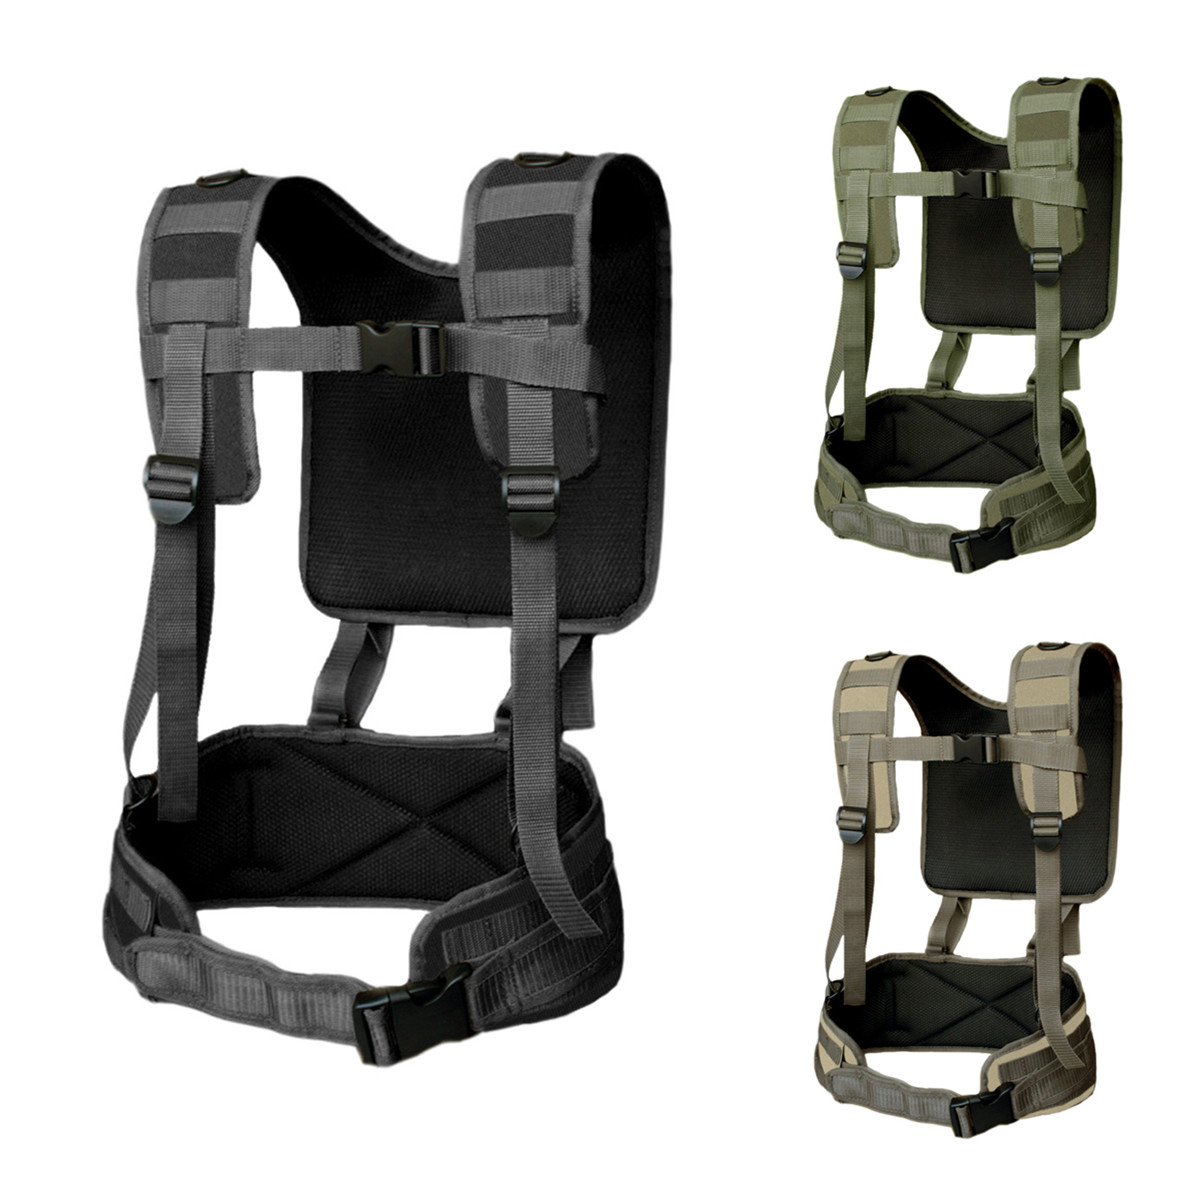 Tactical H-Harness Waist Battle Belt Suspenders Hunting Molle Vest Chest Rig